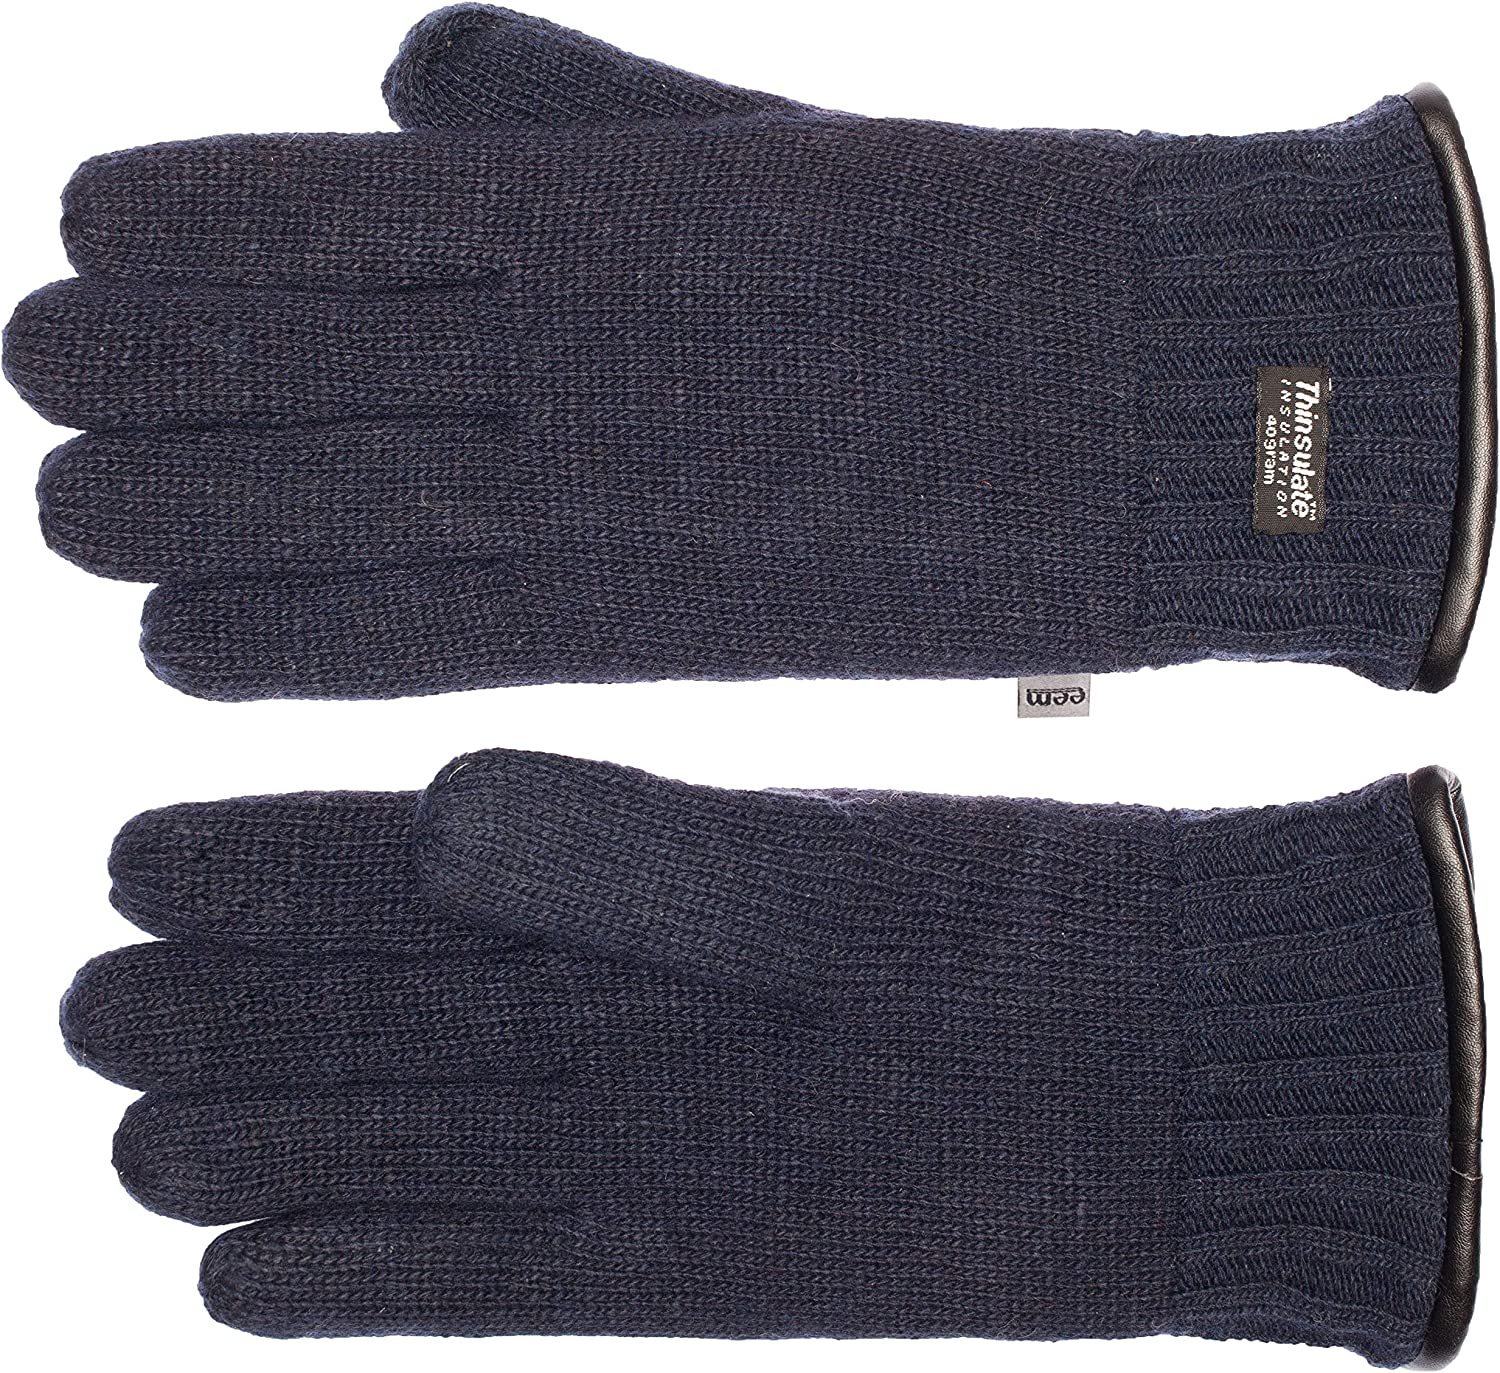 EEM Mens Knitted Gloves LASSE with Thinsulate thermal lining